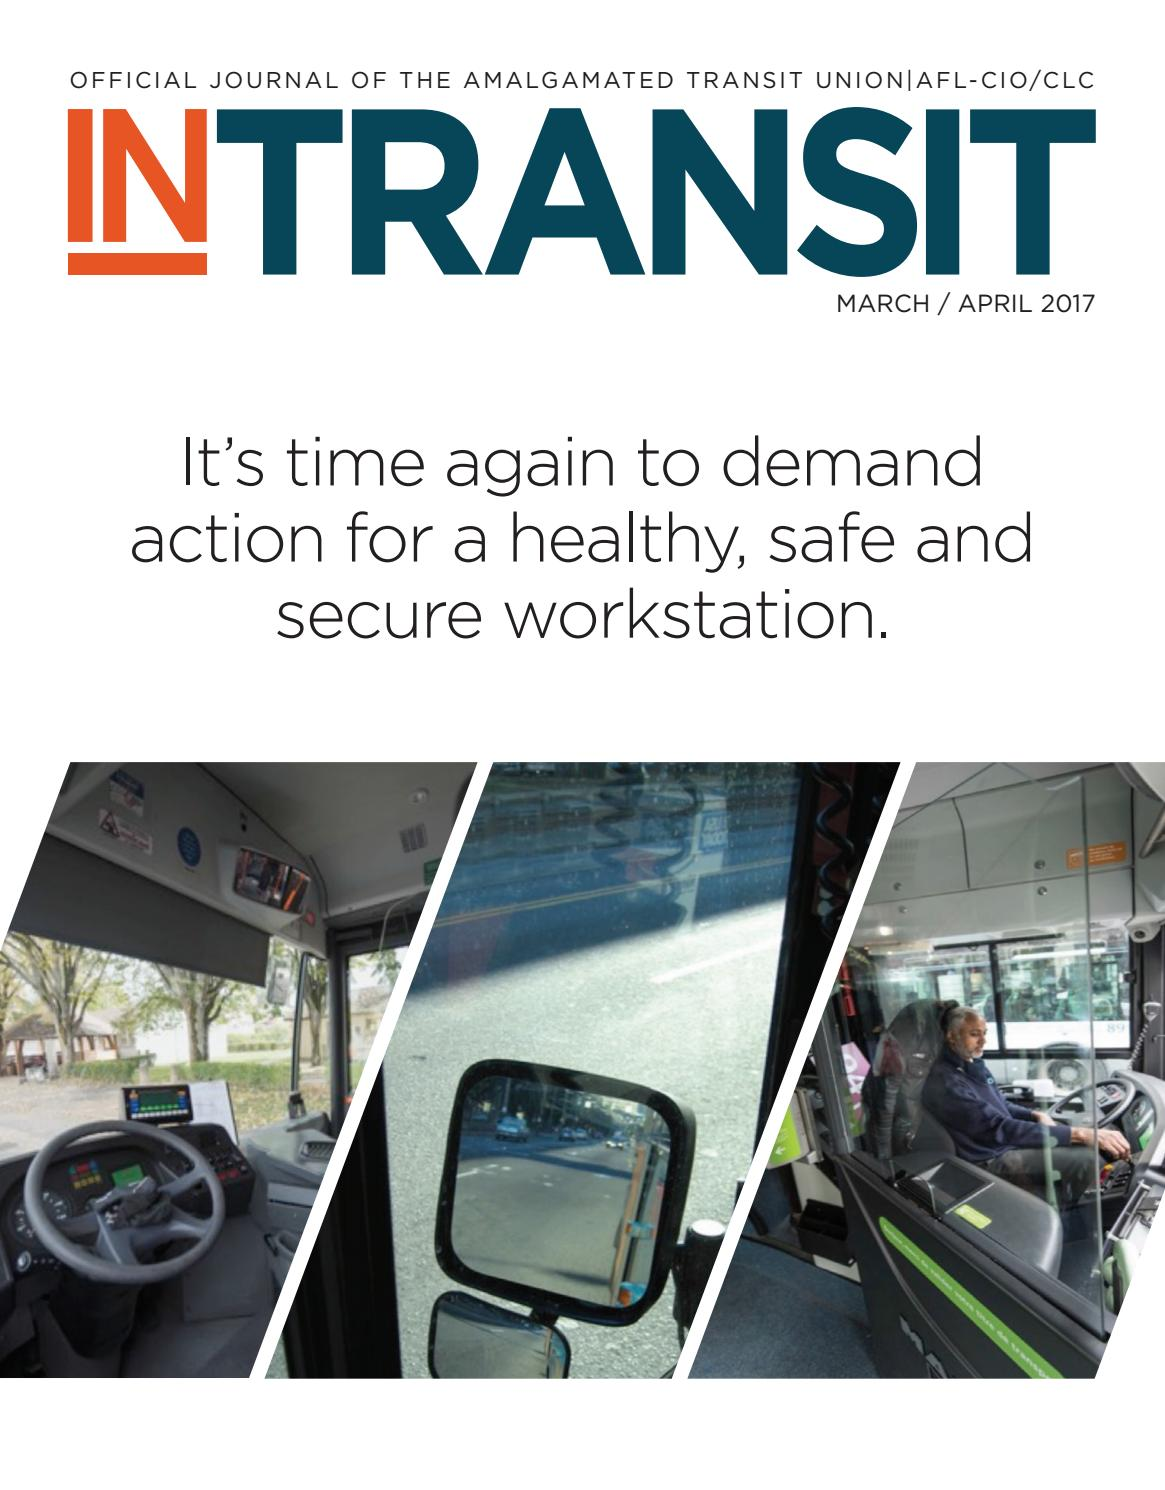 In Transit - March/April 2017 by Amalgamated Transit Union - issuu